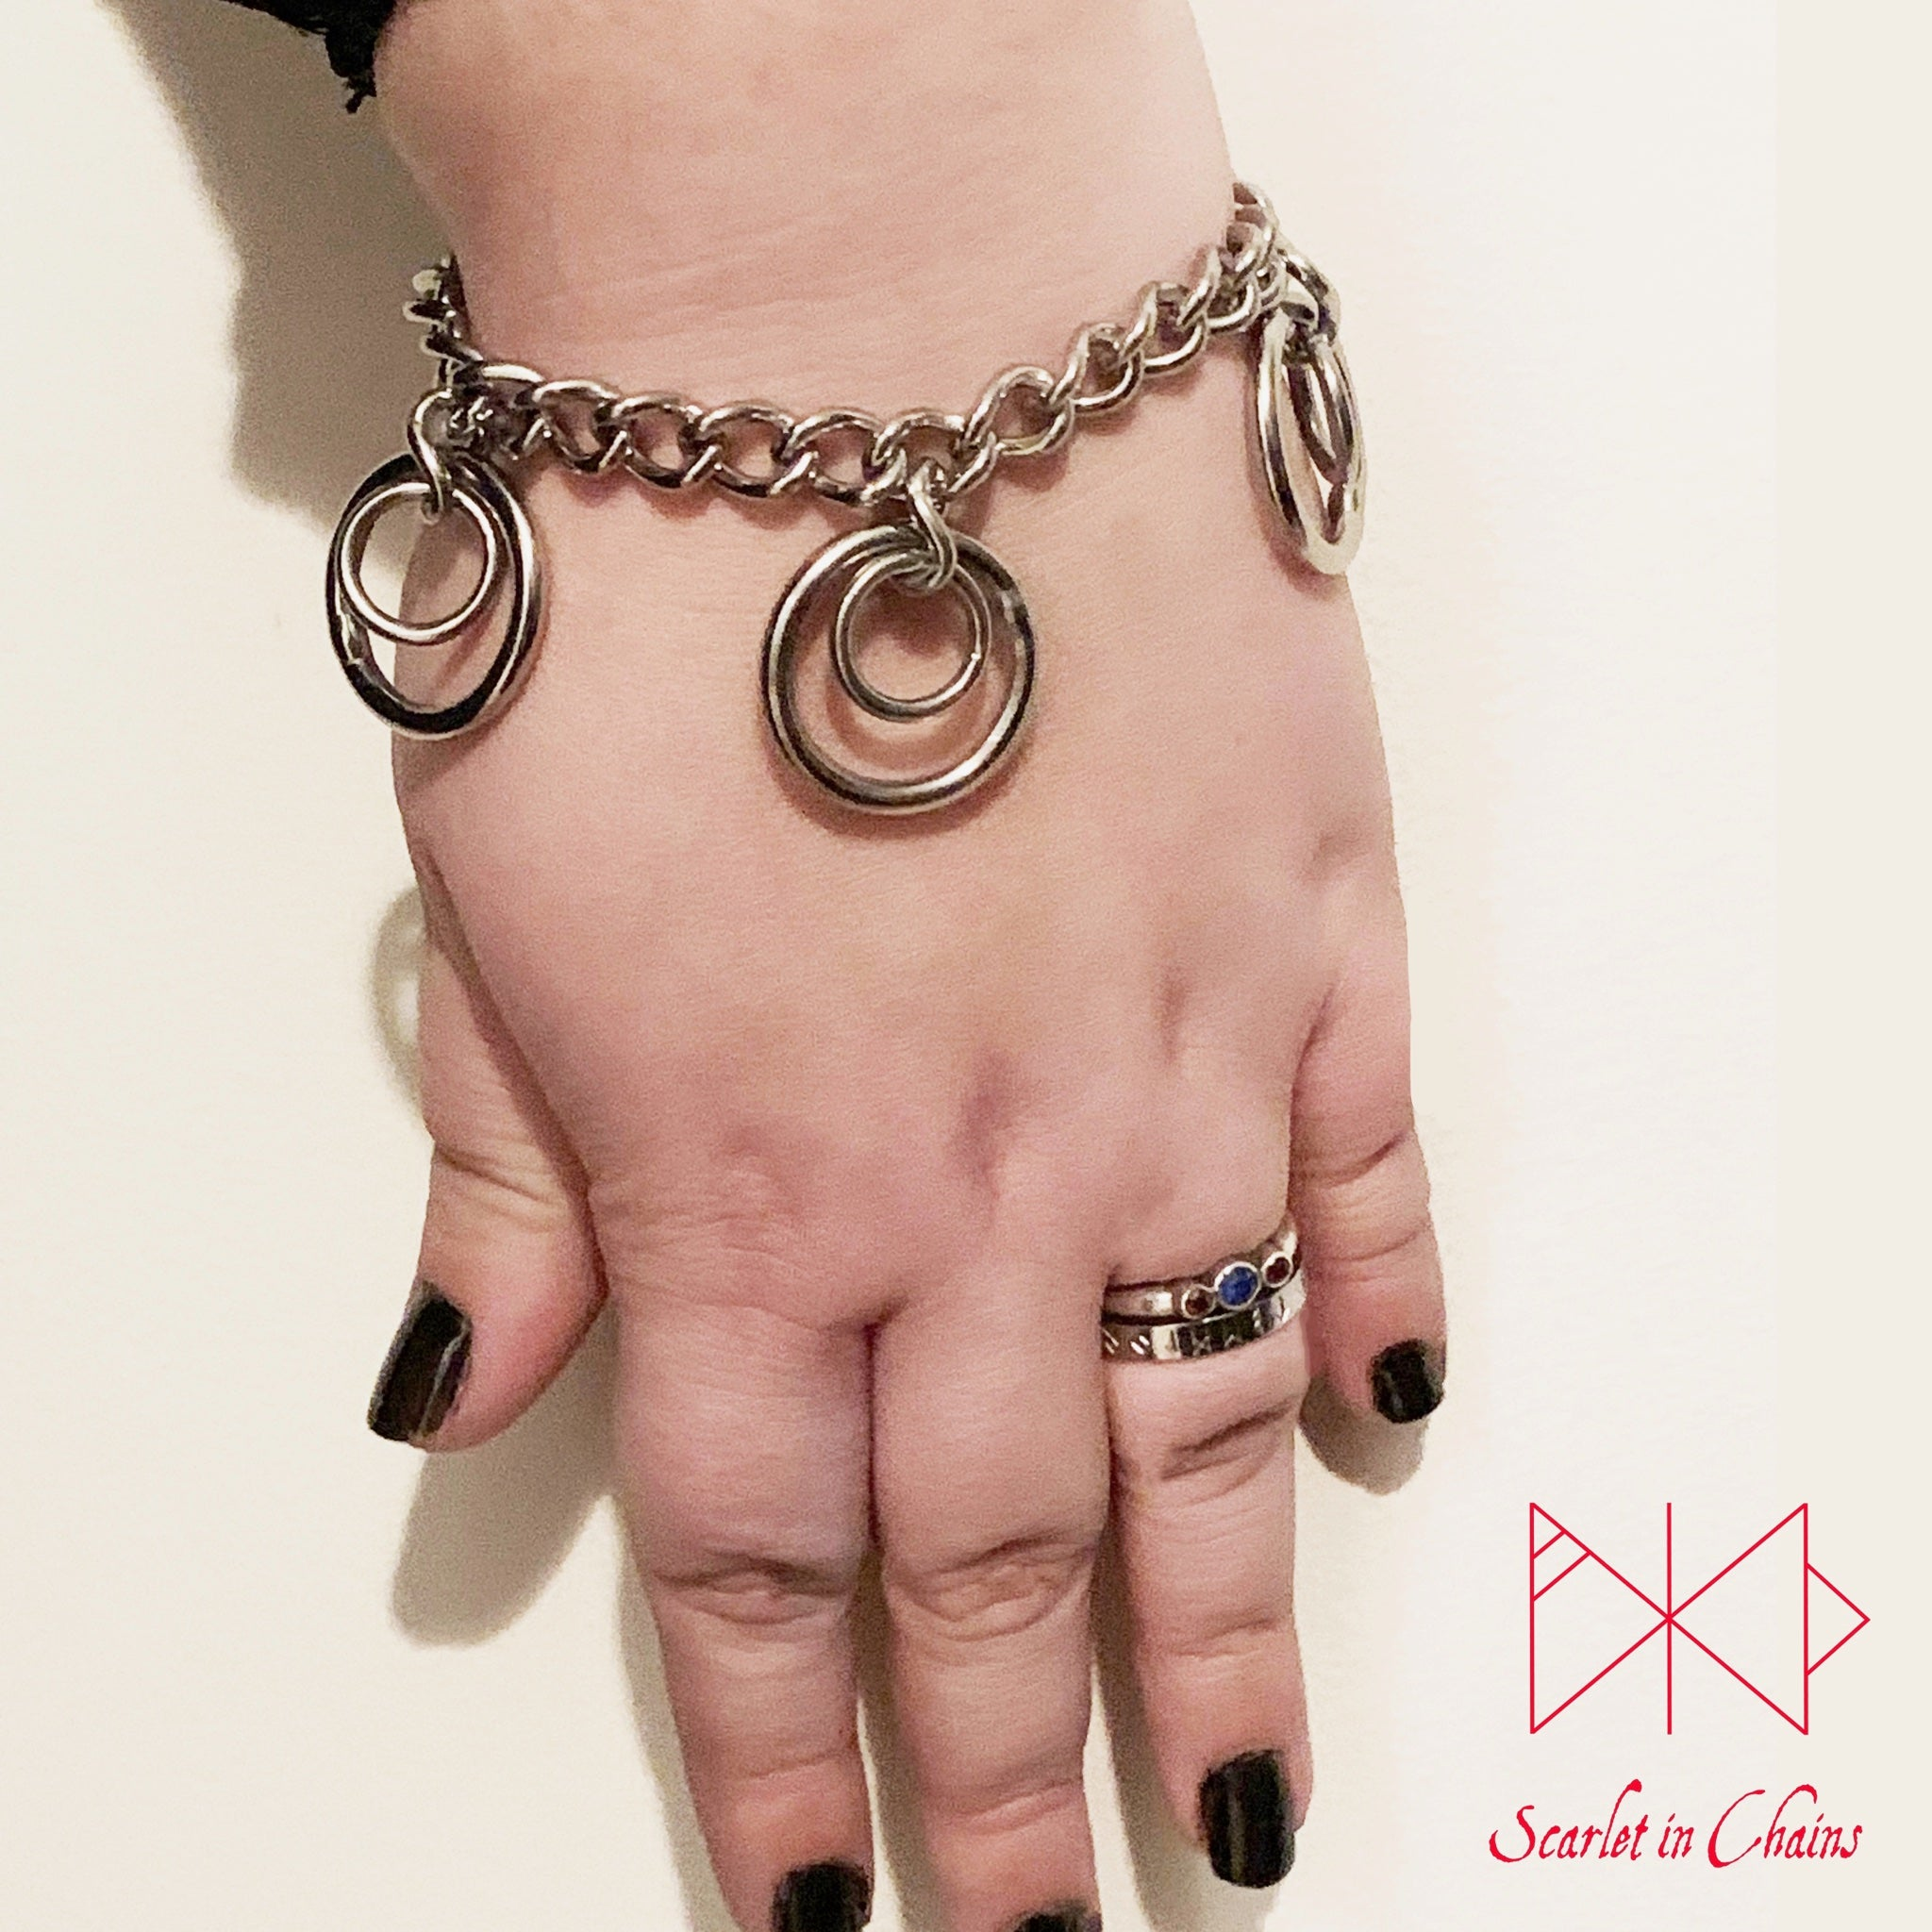 Valkyrie Eclipse Mini Bracelet cuff, shown worn, made from 304 Stainless Steel chain and O rings